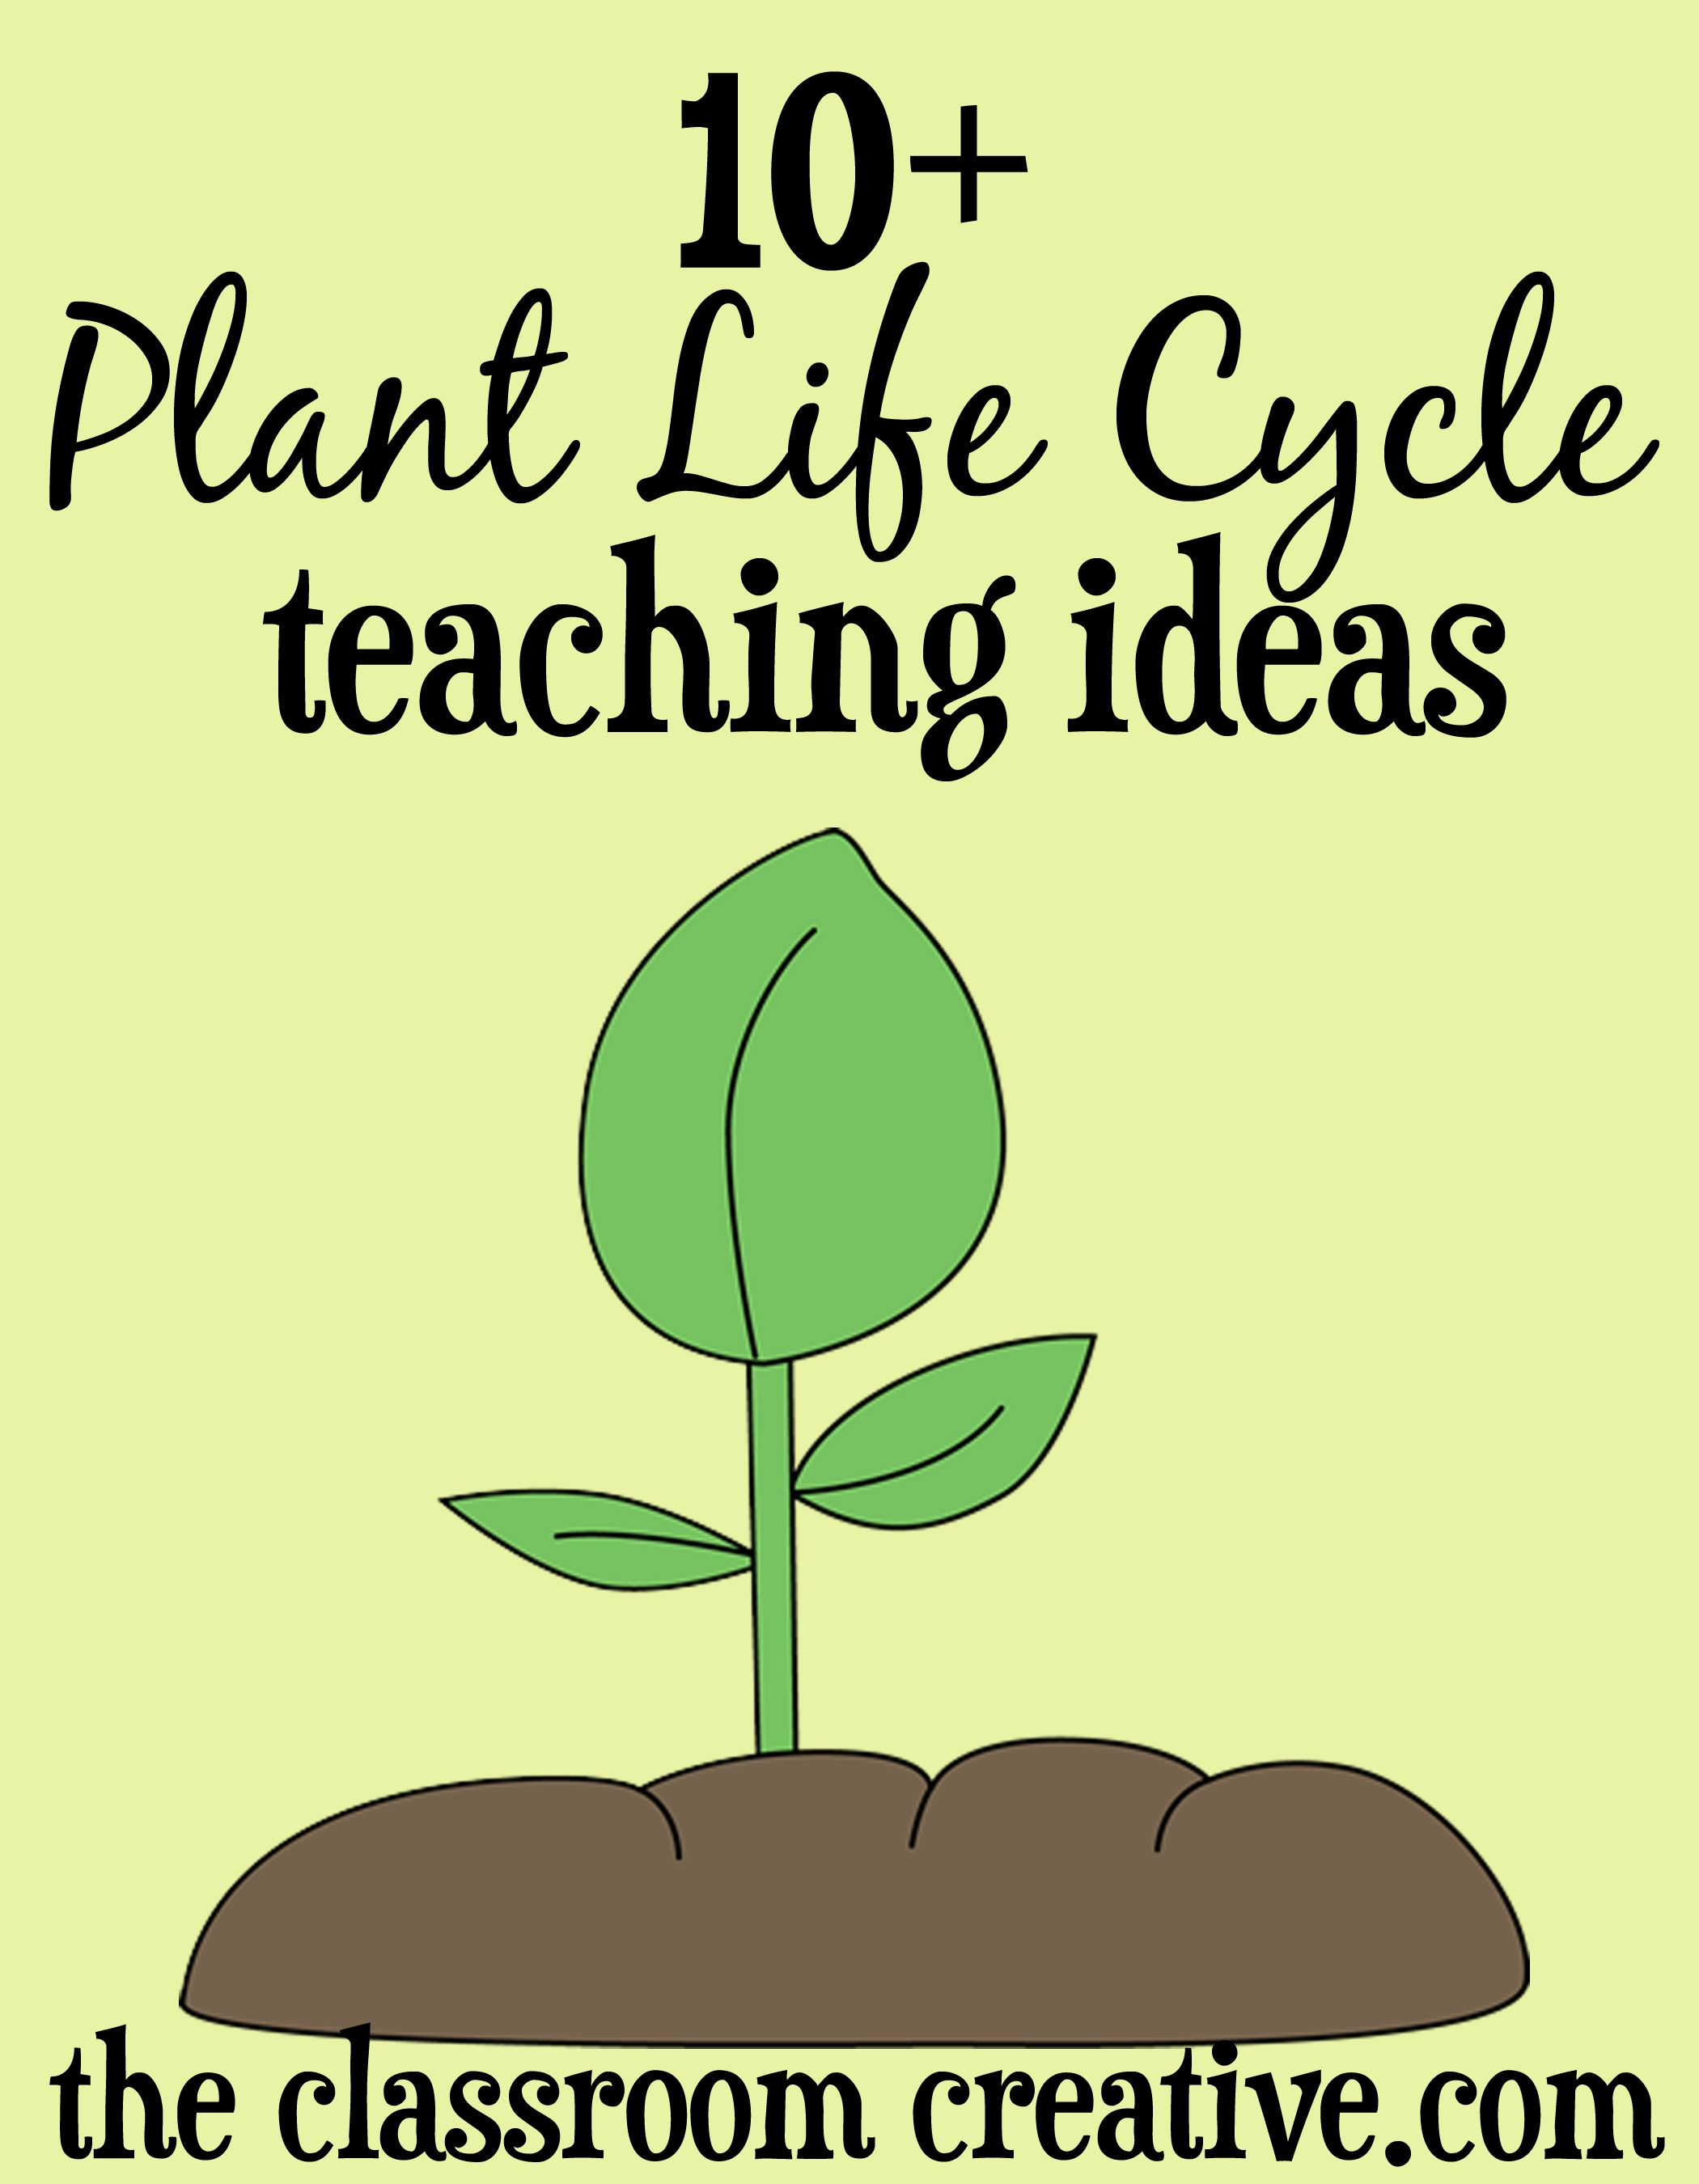 Plant Life Cycle Unit Ideas And Activities Plant Life Cycle Plant Life Cycle Worksheet Life Cycles Activities [ 2700 x 2100 Pixel ]